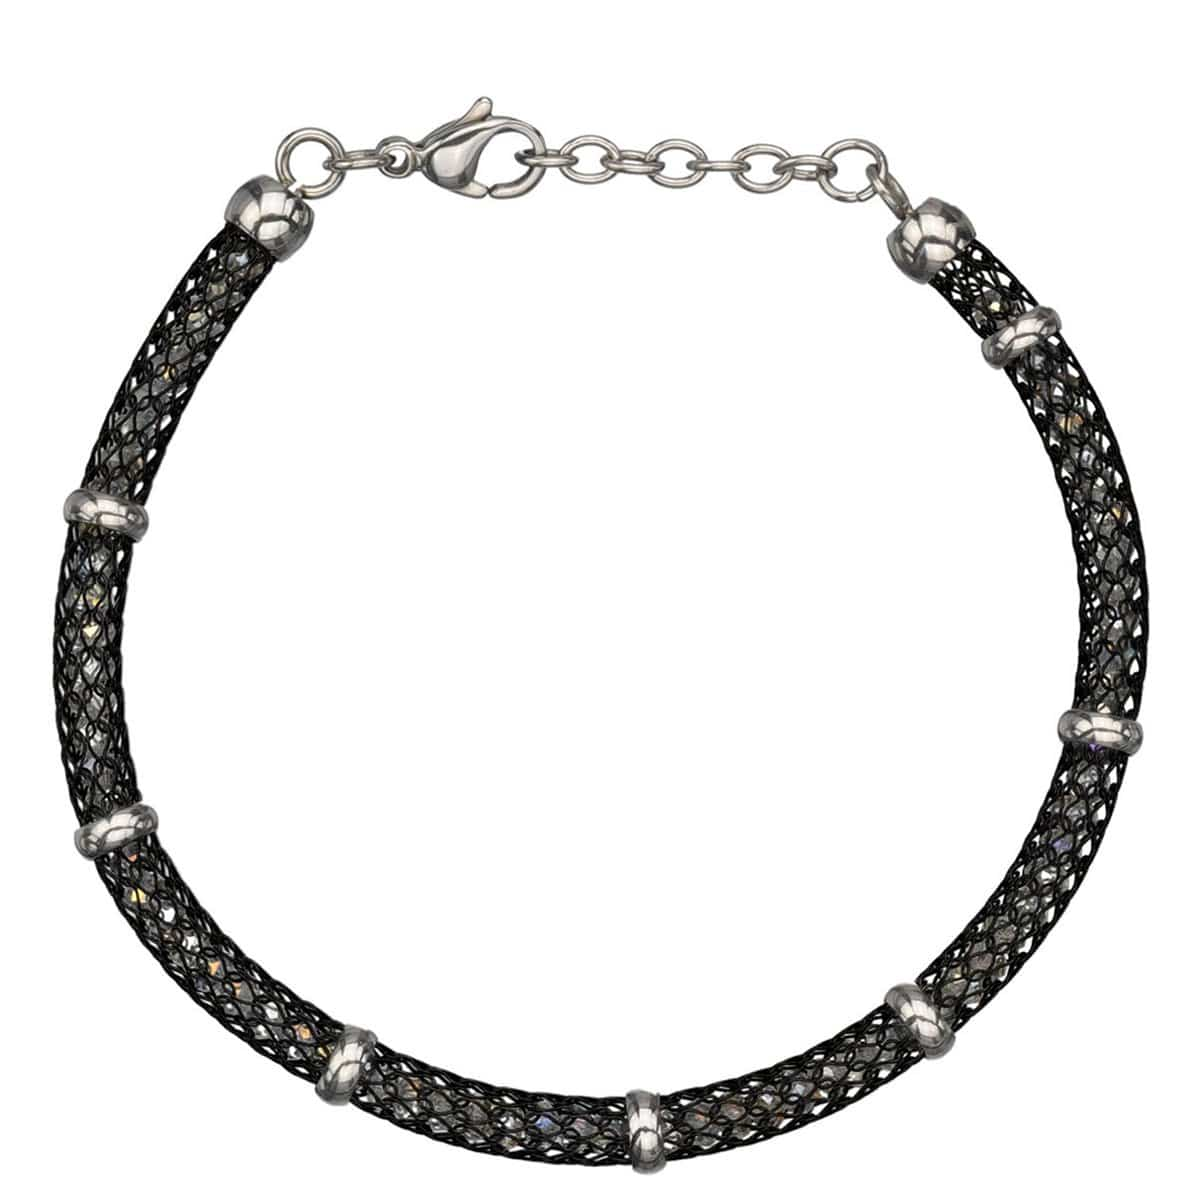 Black & Silver Stainless Steel Thin Polished Net & Bead Bracelet